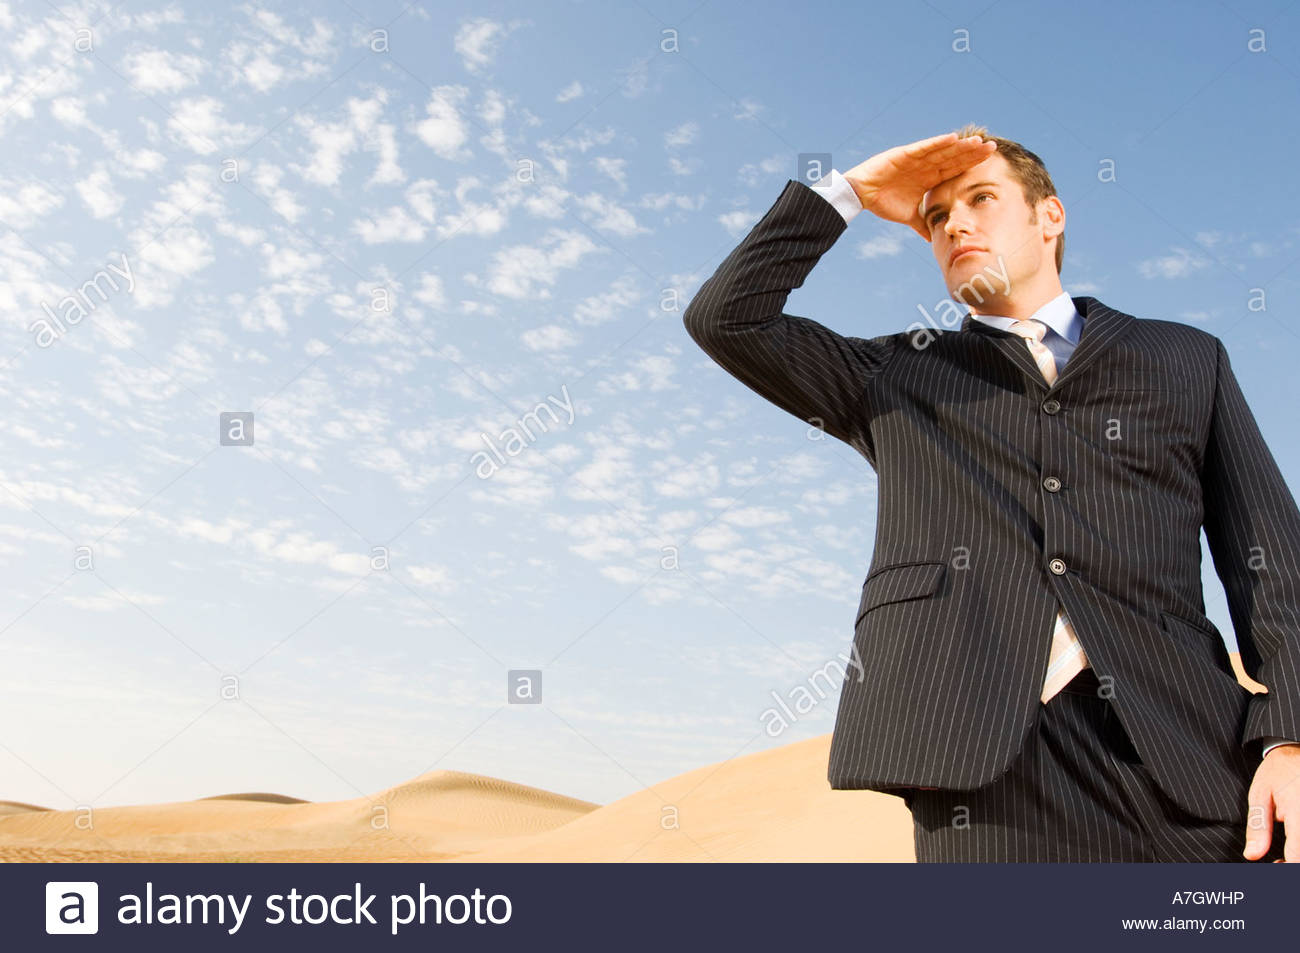 A man in a suit standing in a desert - Stock Image